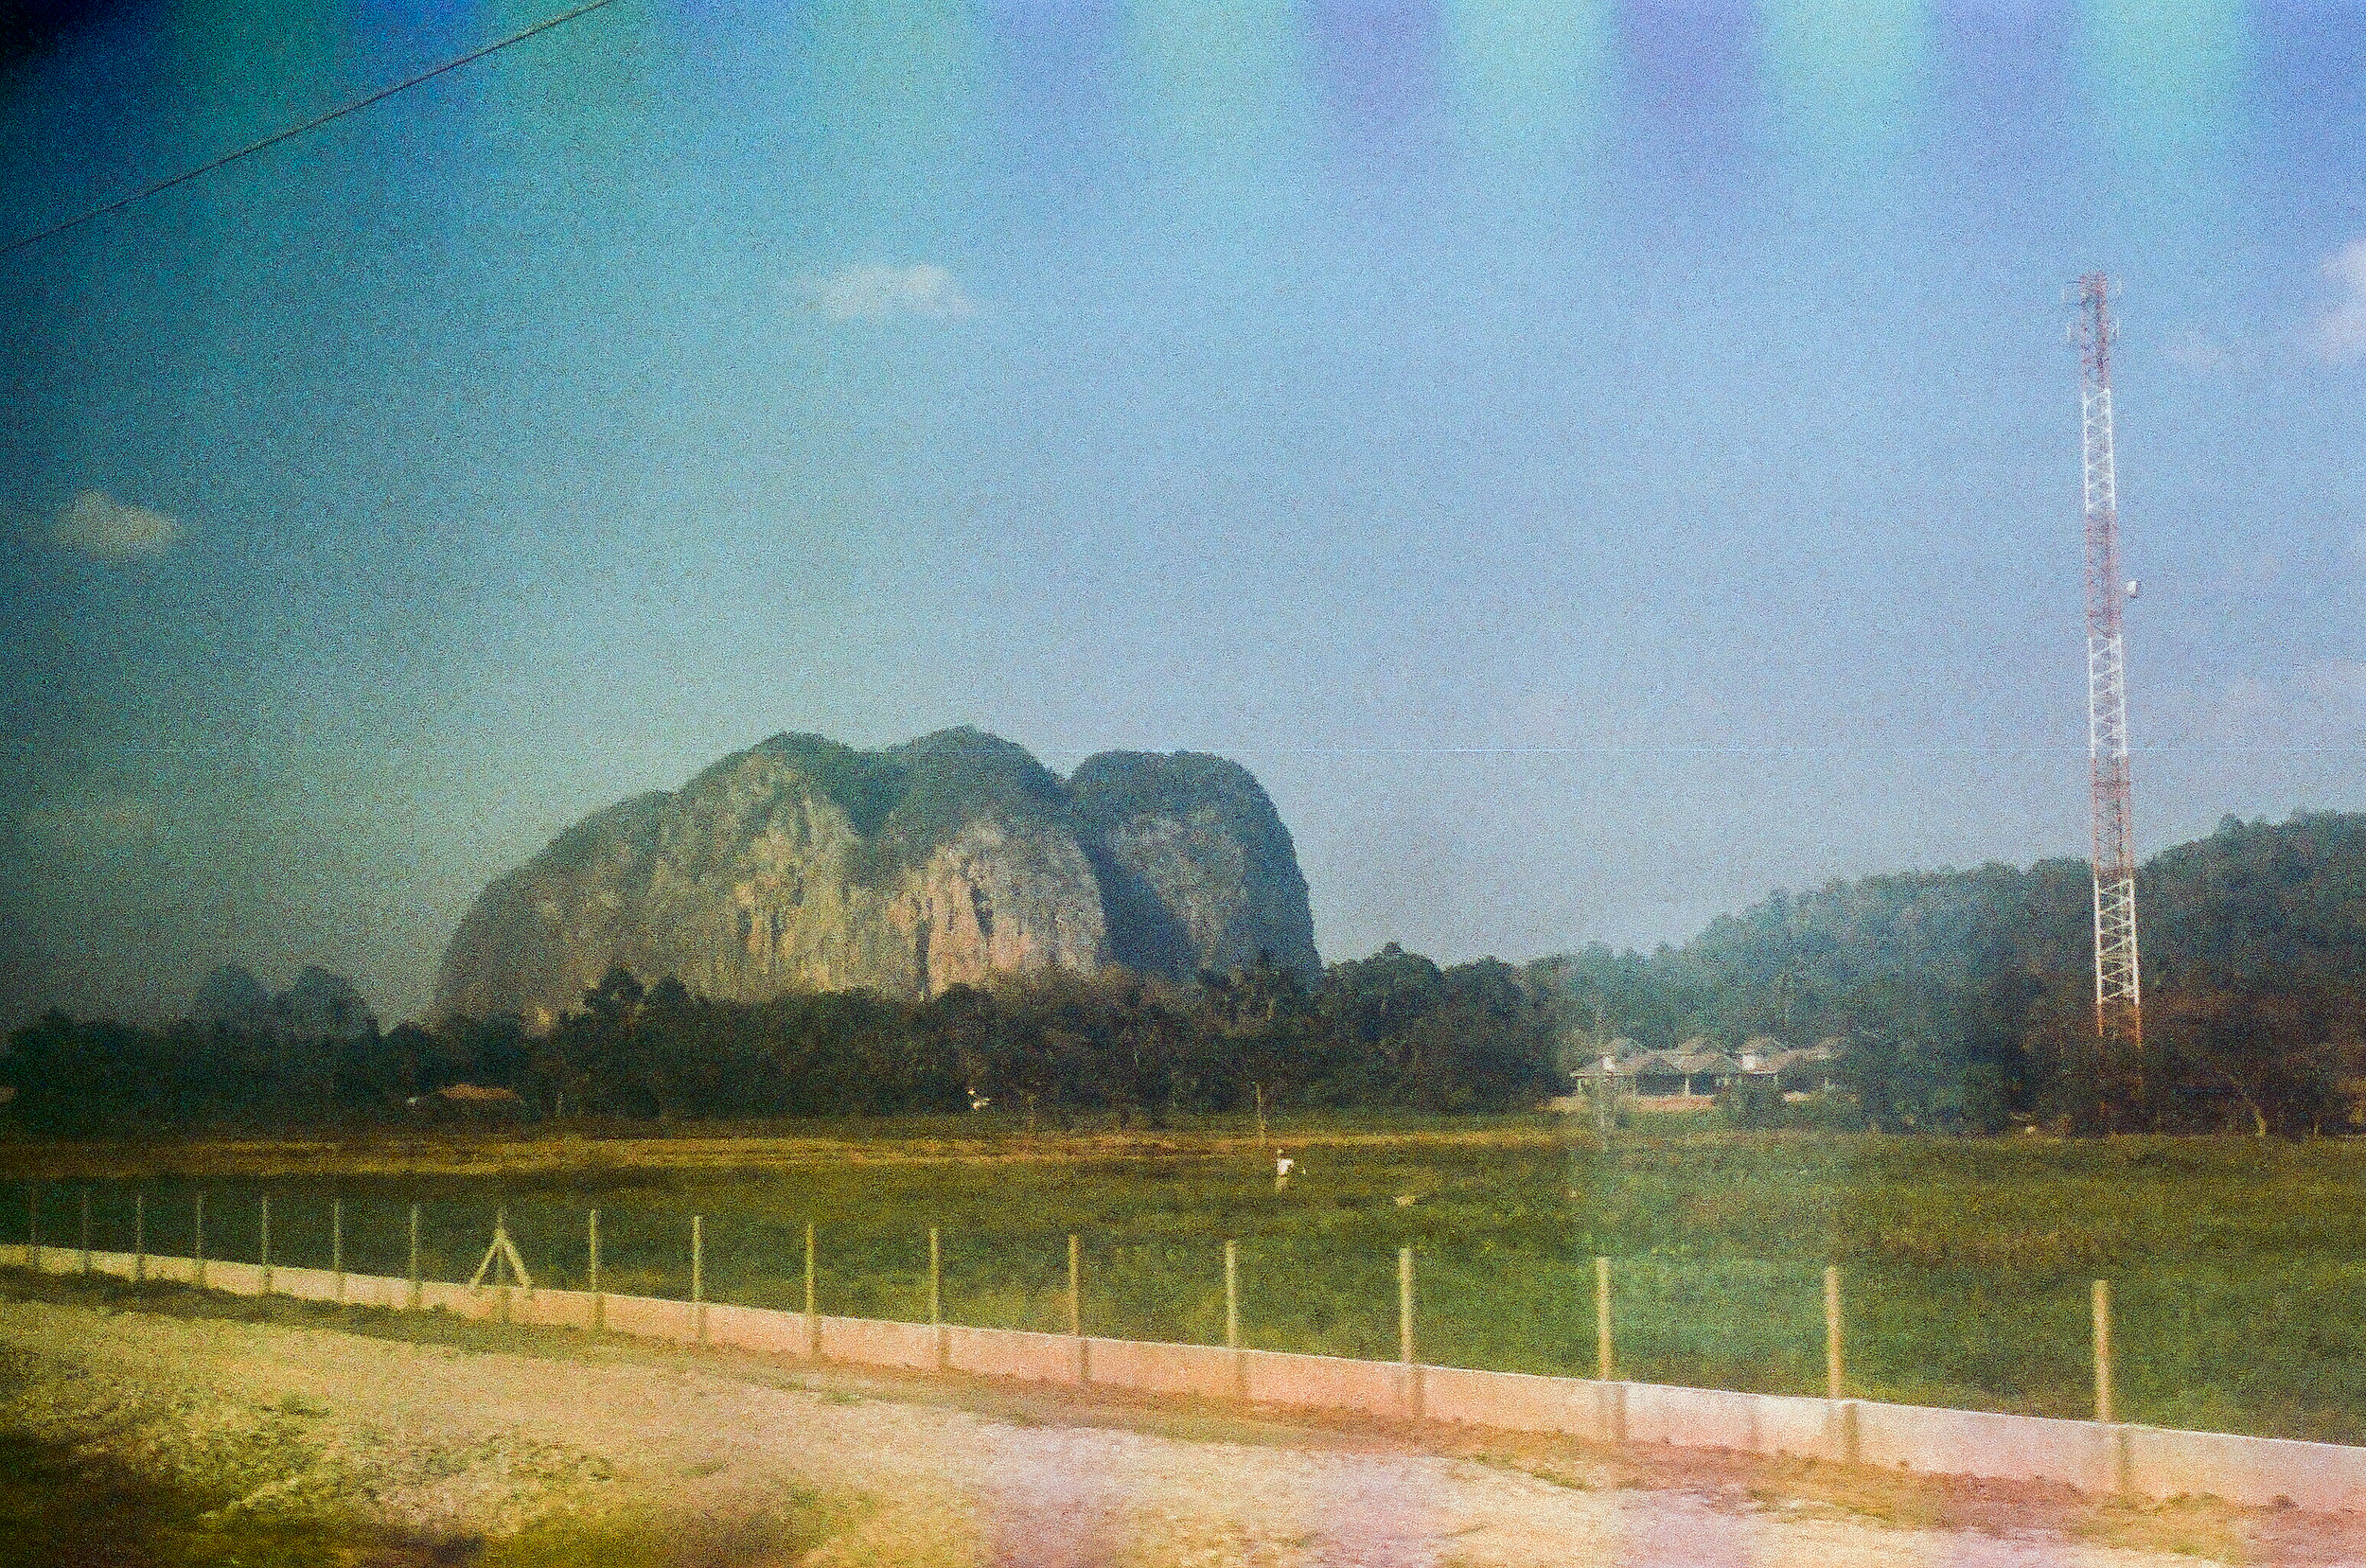 Thai countryside, on a train from Georgetown to Chumphon.